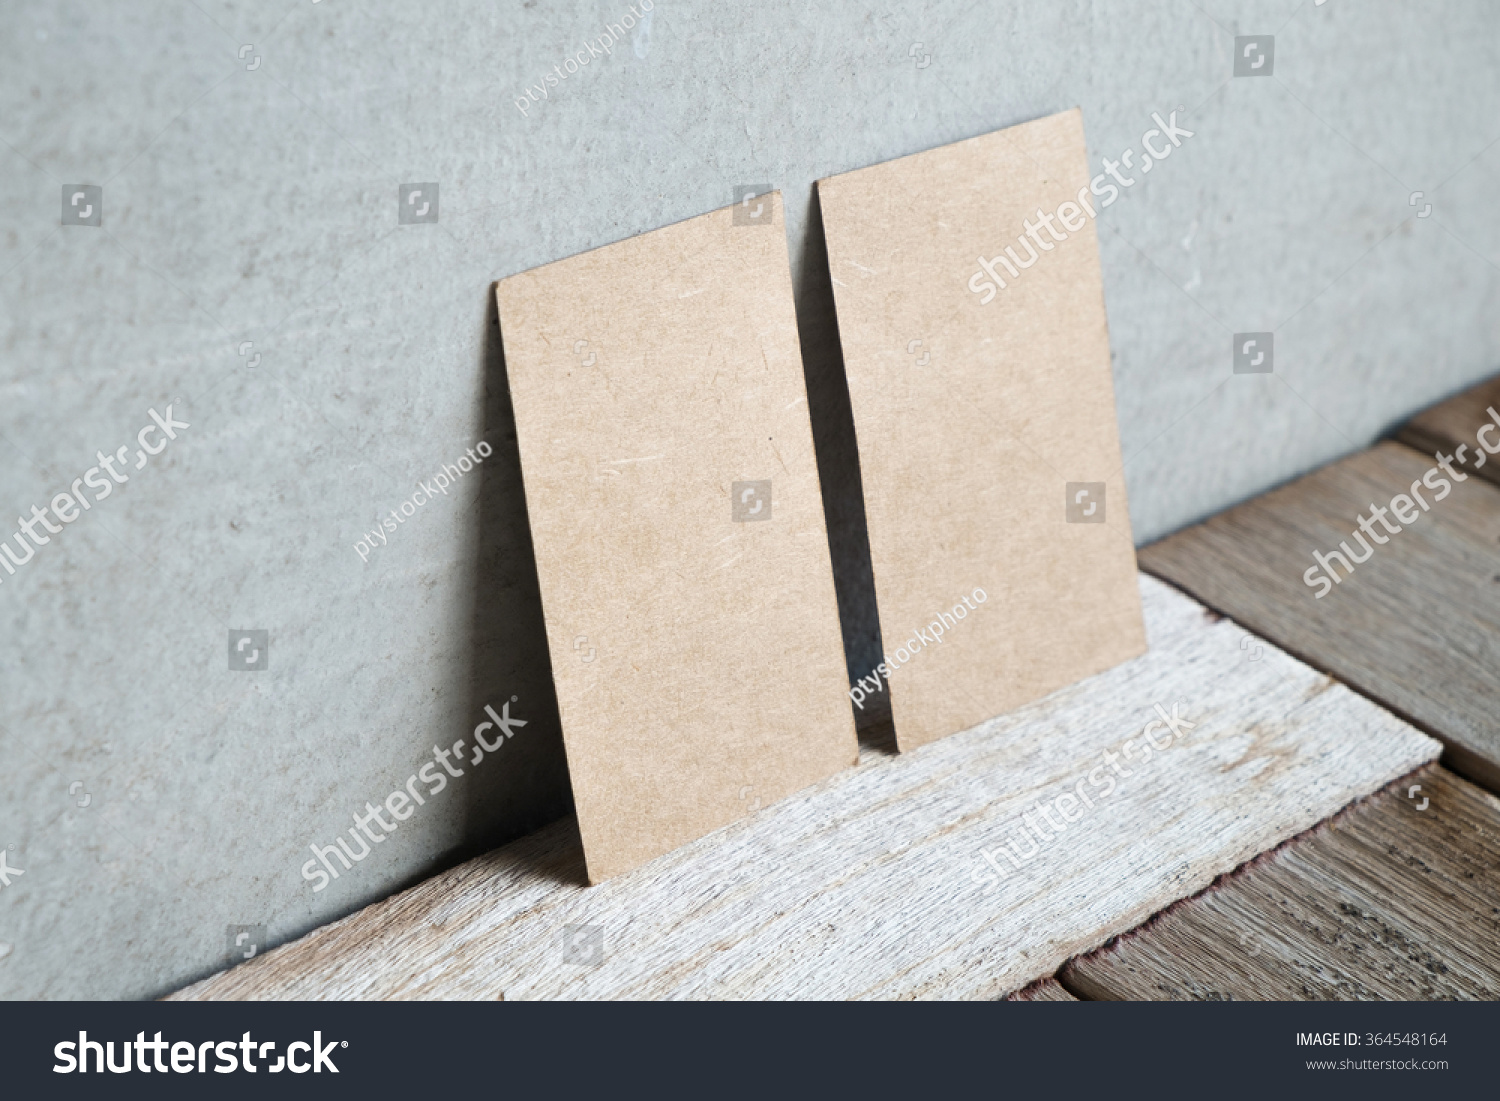 Recycled Paper Business Cards Mock On Stock Photo (Edit Now ...